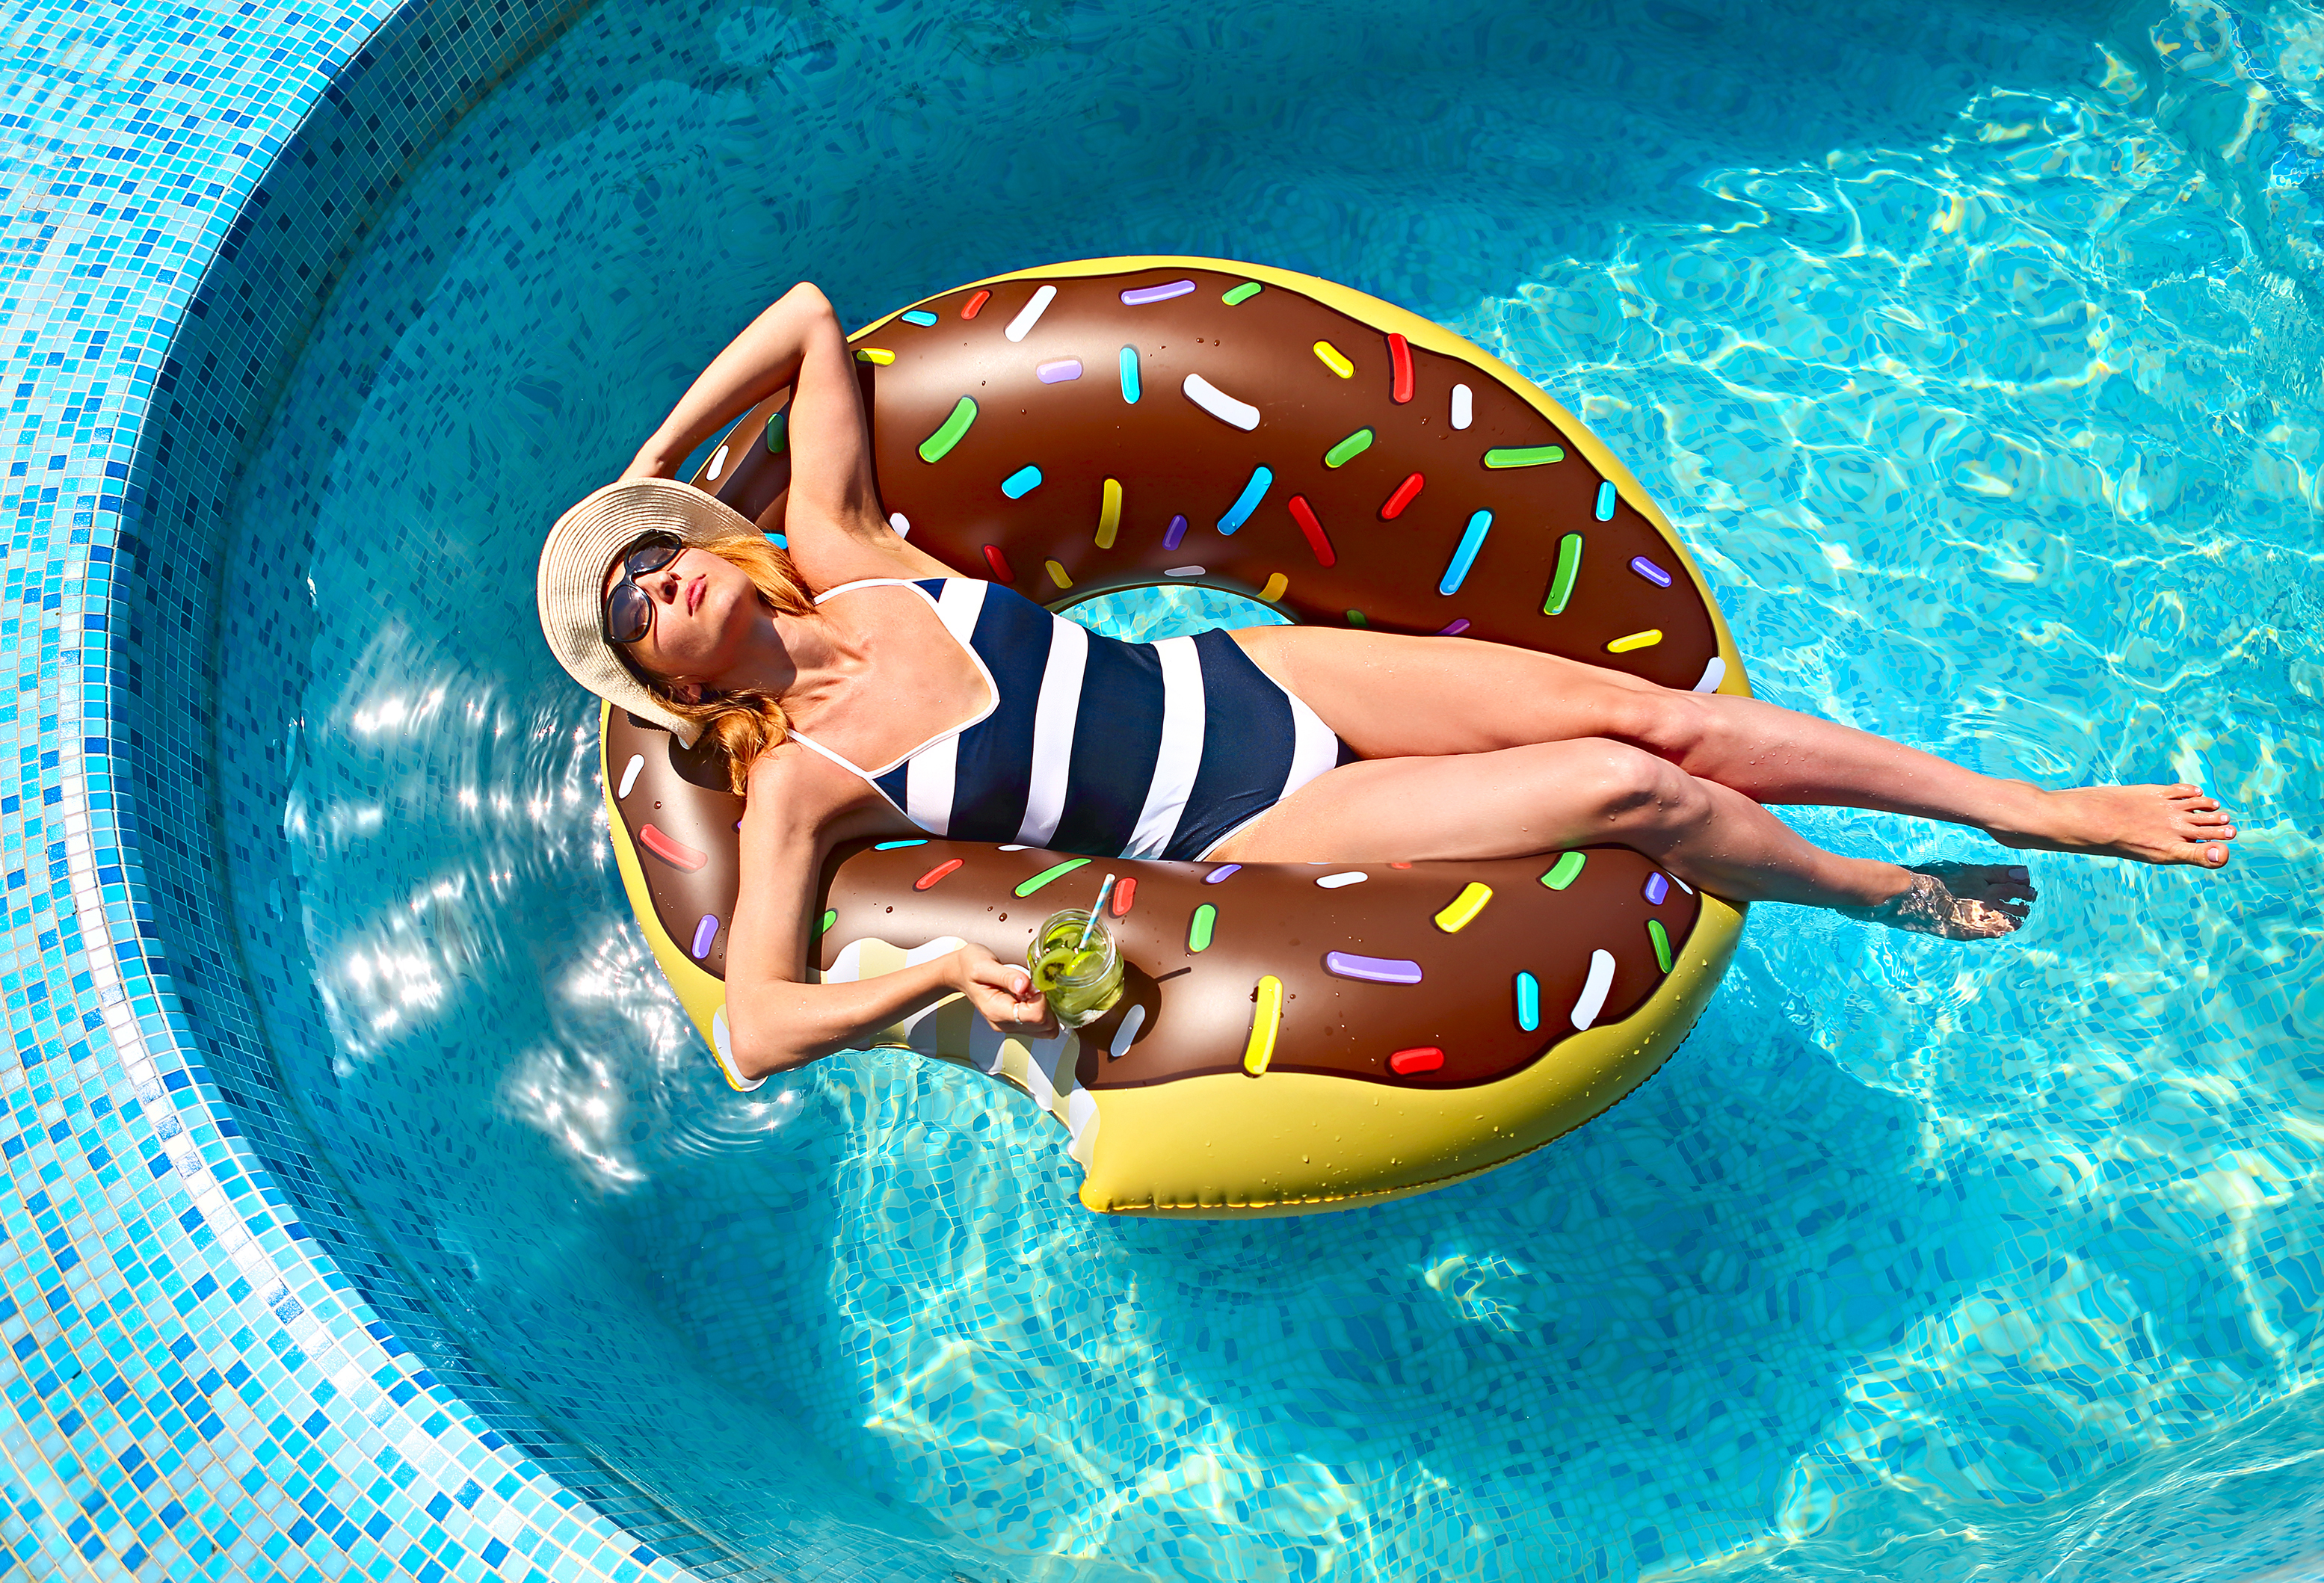 Young woman on summer pool party in swimming pool drinking lemonade